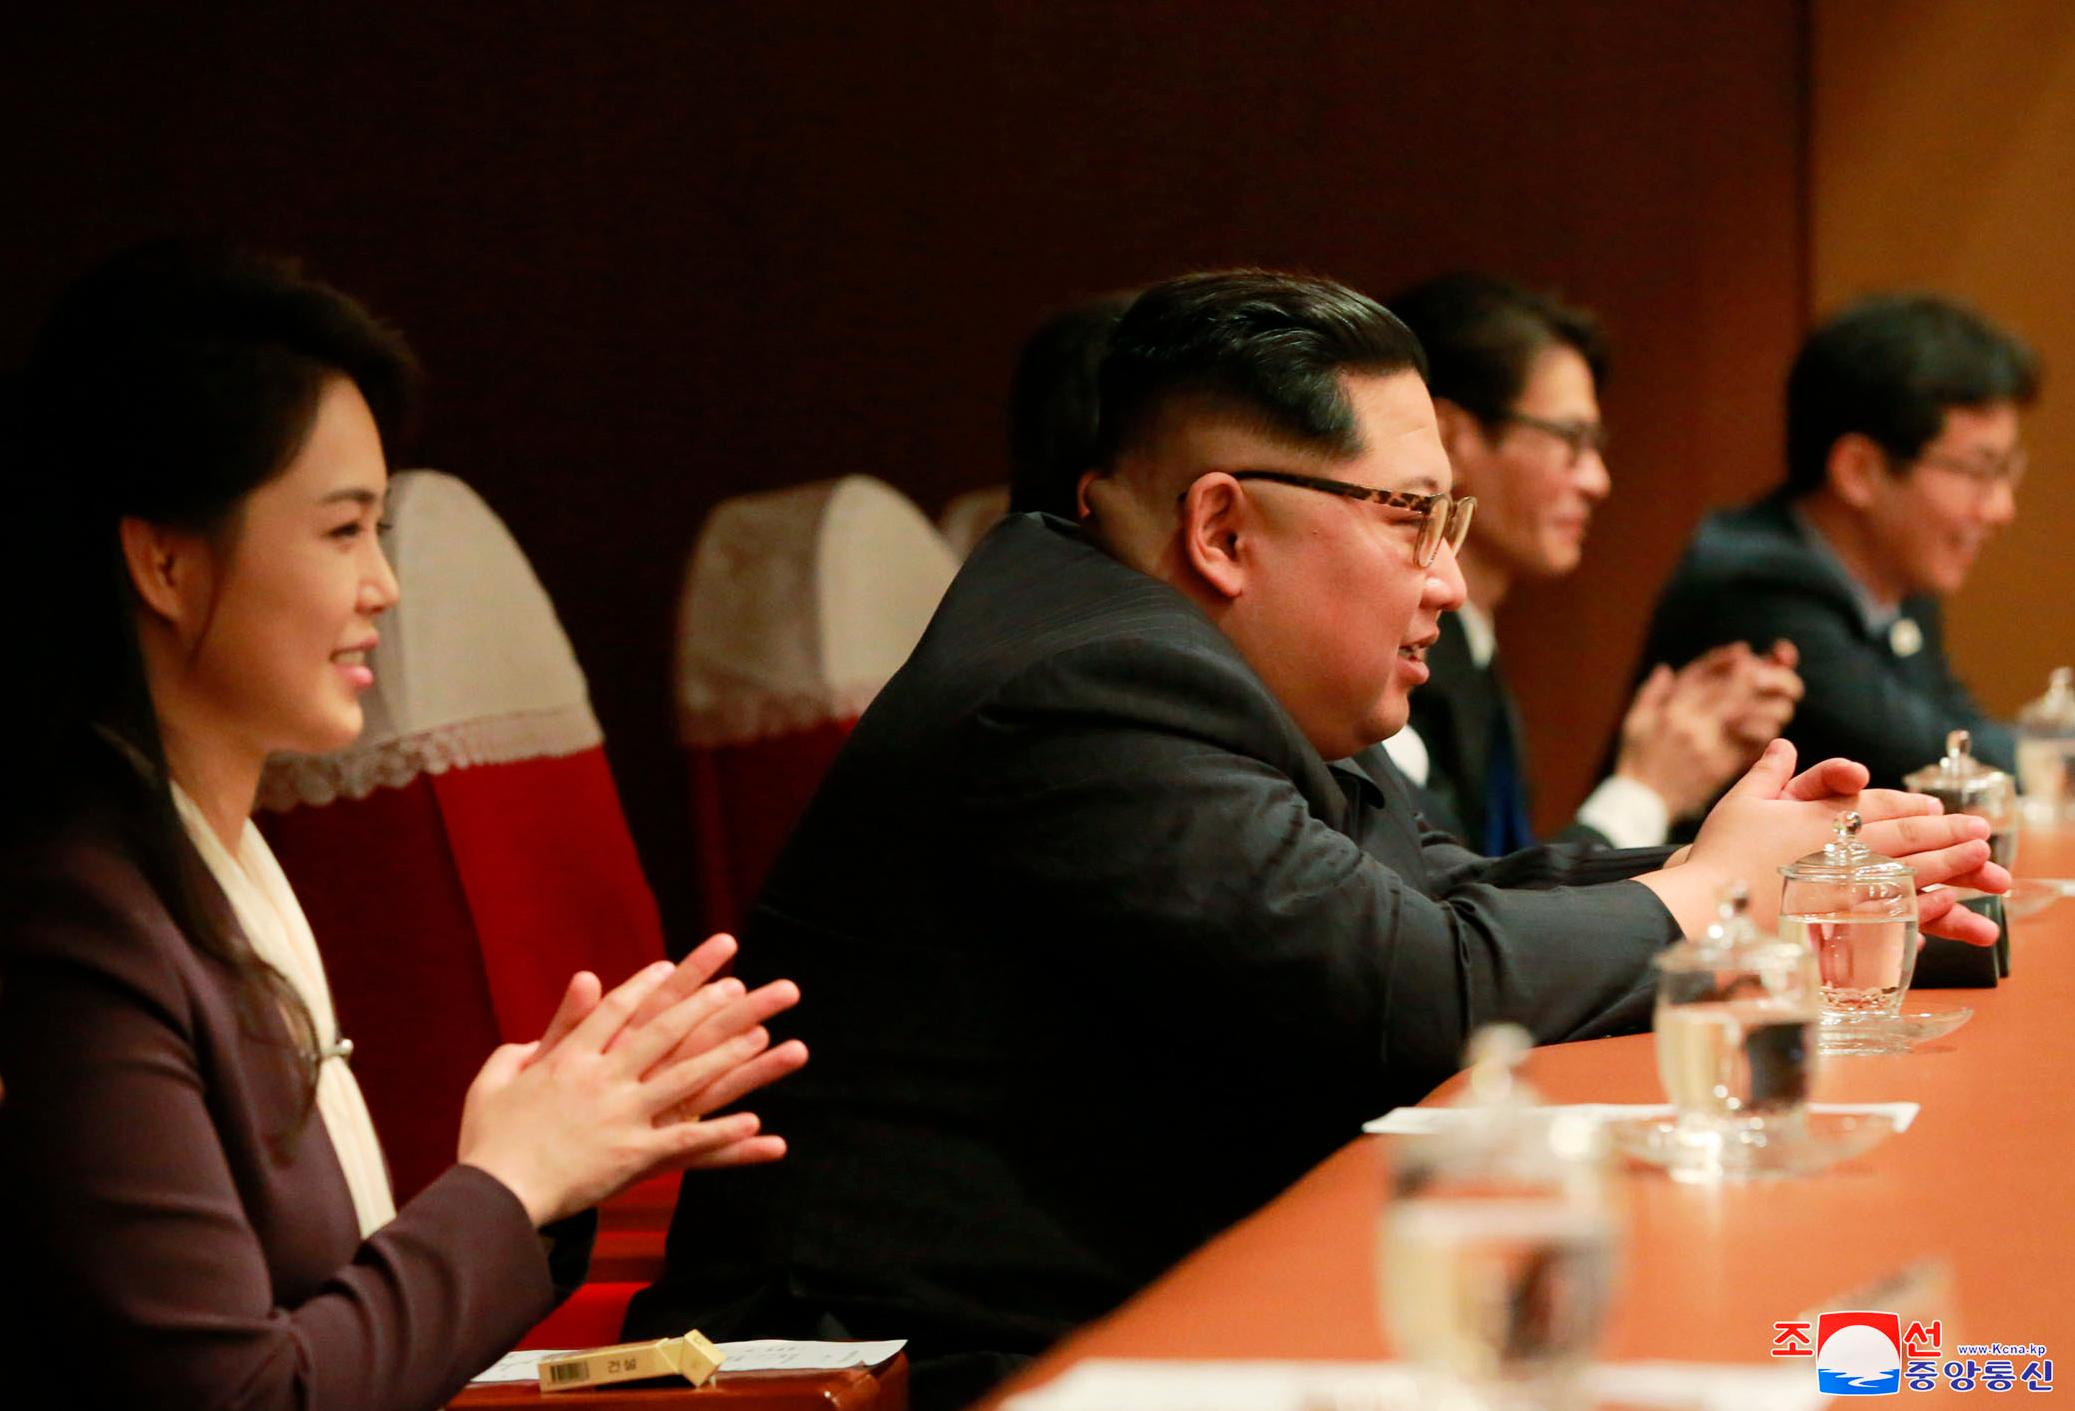 "In this photo provided by the North Korean government, North Korean leader Kim Jong Un, center right, and his wife Ri Sol Ju, left, sit on their seats during performance by members of a South Korean artistic group, including the South's pop legends and popular girl band Red Velvet, at East Pyongyang Grand Theater in Pyongyang, North Korea, Sunday, April 1, 2018. Kim clapped his hands as he, along with his wife and hundreds of other citizens, watched the rare performance Sunday by South Korean pop stars visiting Pyongyang, highlighting the thawing ties between the rivals after years of heightened tensions over the North's nuclear program. Independent journalists were not given access to cover the event depicted in this image distributed by the North Korean government. The content of this image is as provided and cannot be independently verified. Korean language watermark on image as provided by source reads: ""KCNA"" which is the abbreviation for Korean Central News Agency.  (Korean Central News Agency/Korea News Service via AP)"